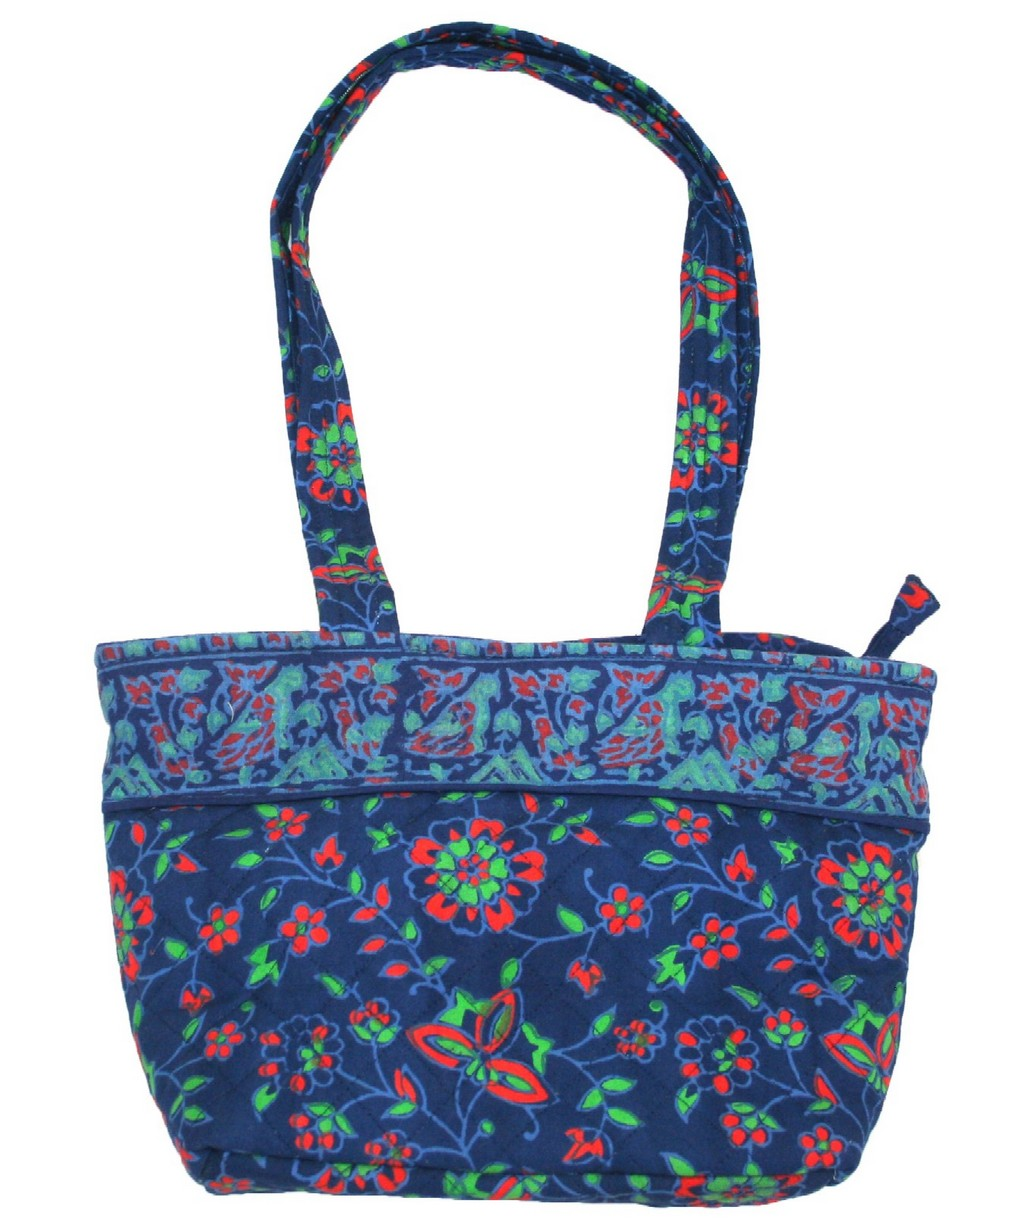 Block Printed Cotton Quilted Napthol Handbag 13 x 9